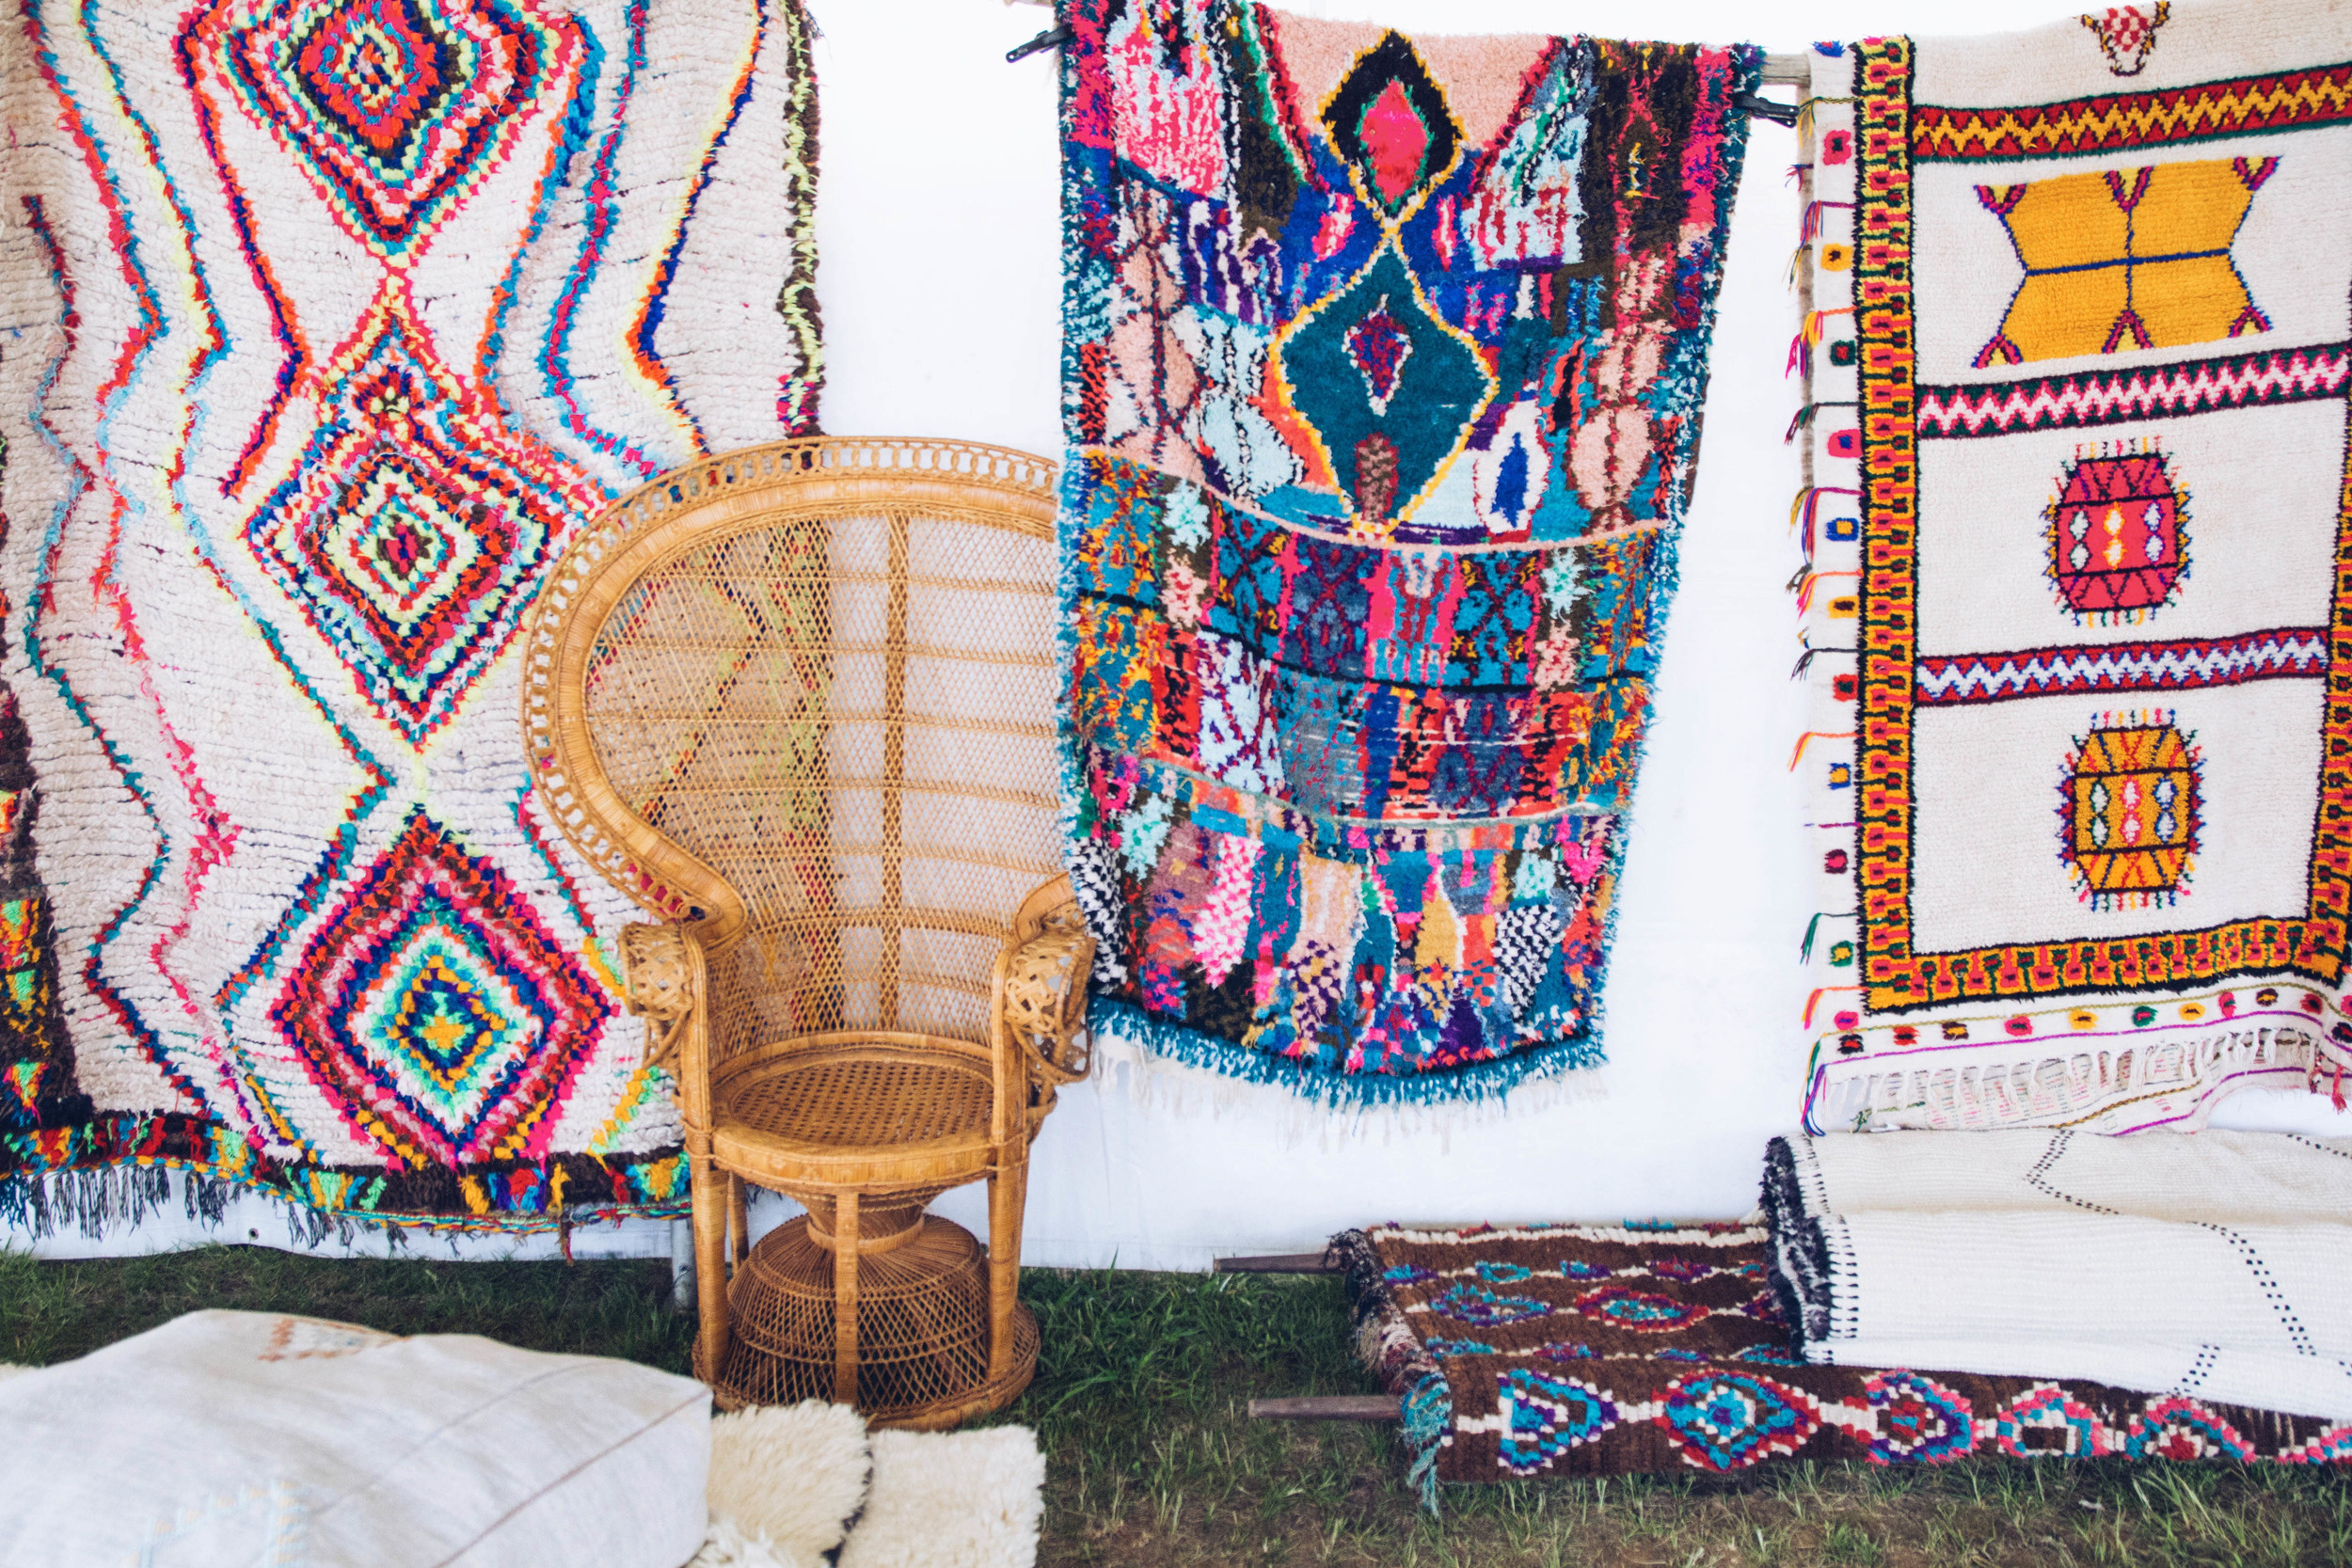 This vendor,  Heja Home , had gorgeous rugs, poufs, pillows and wicker chairs.